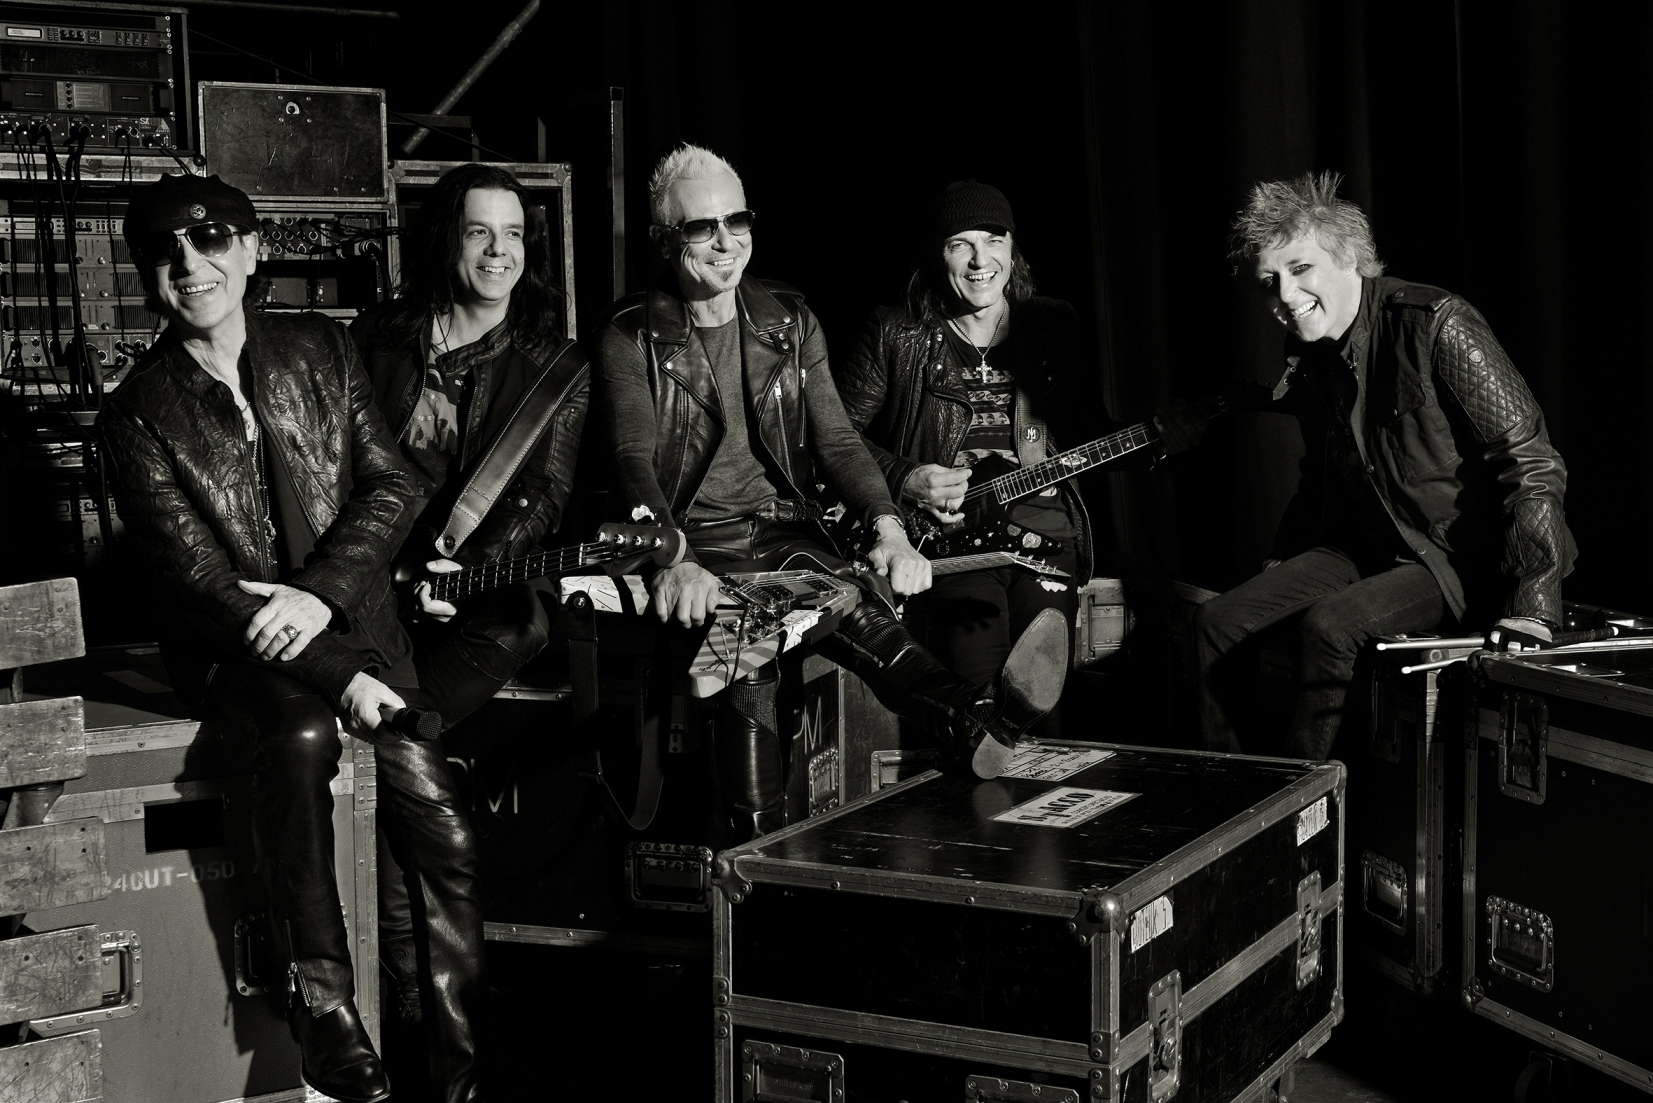 Scorpions movie set for DVD release